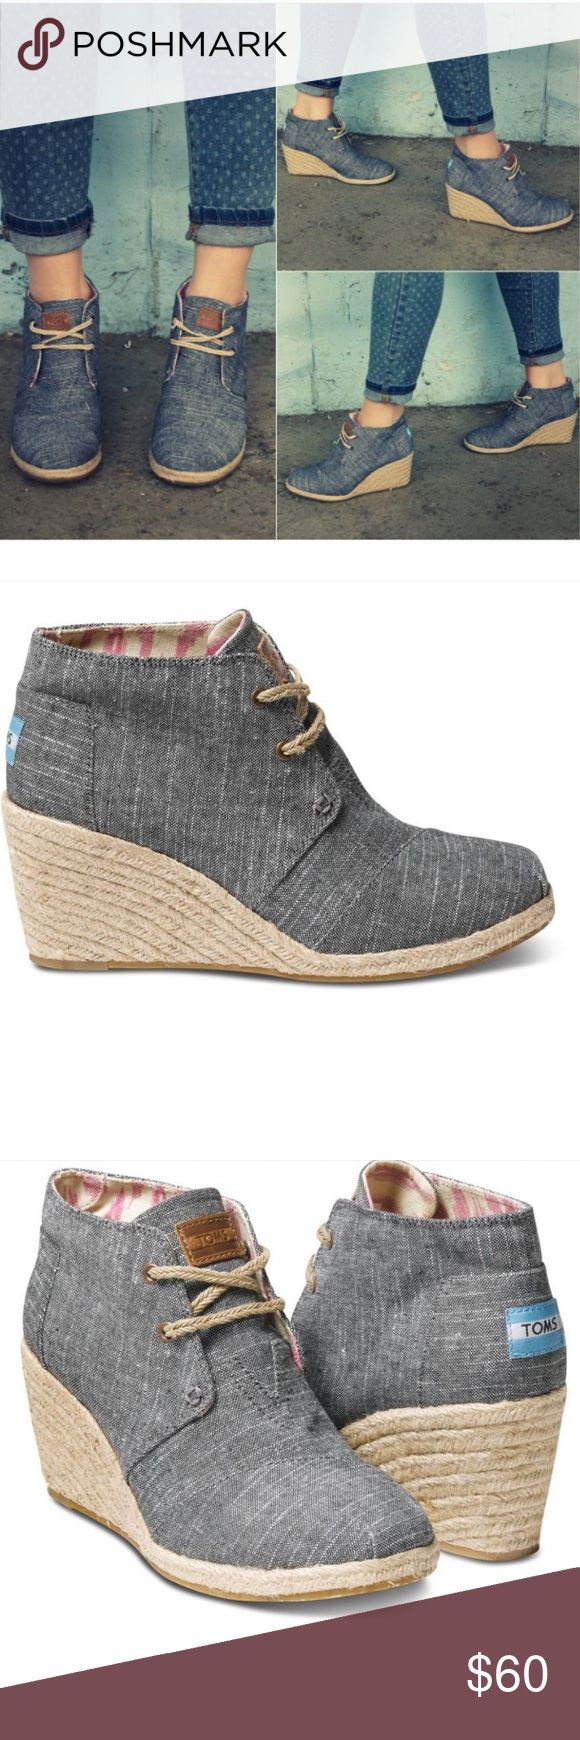 TOMS Chambray Desert Wedge Gently worn, great condition TOMS Black Chambray Womens Desert Wedge size 11. A closed-toe lace-up wedge fashioned with downtown walkabout comfort in mind. Versatile enough for dressing up or dressing down, all-day wear provided by the lower heel height of 2 3/4. Official color is Chambray black but looks more blue. Only slight marking is the back of right heel please see pics. Rope lacing and heel with ikat printed liner. Thanks for looking, no trades! TOMS ...